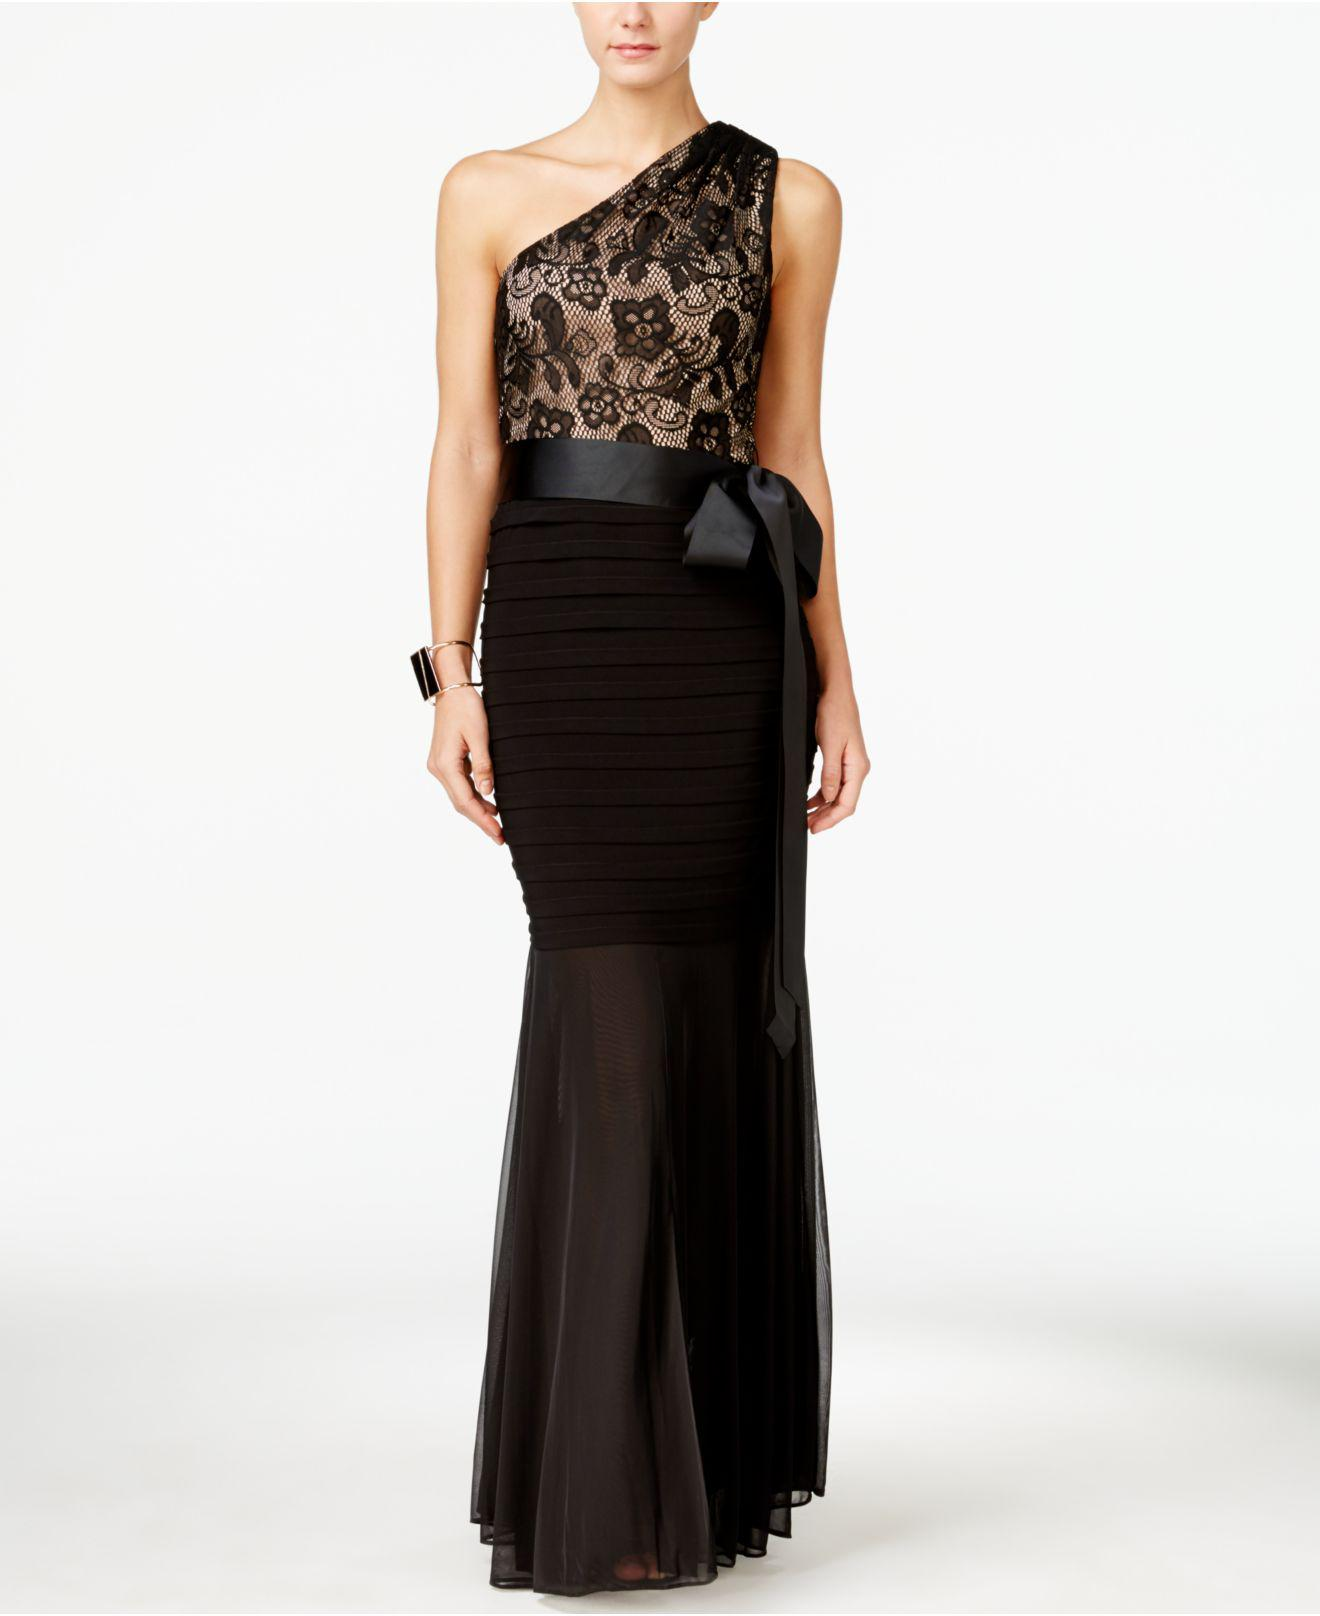 Lyst - Betsy & Adam Lace One-shoulder Mermaid Gown in Black